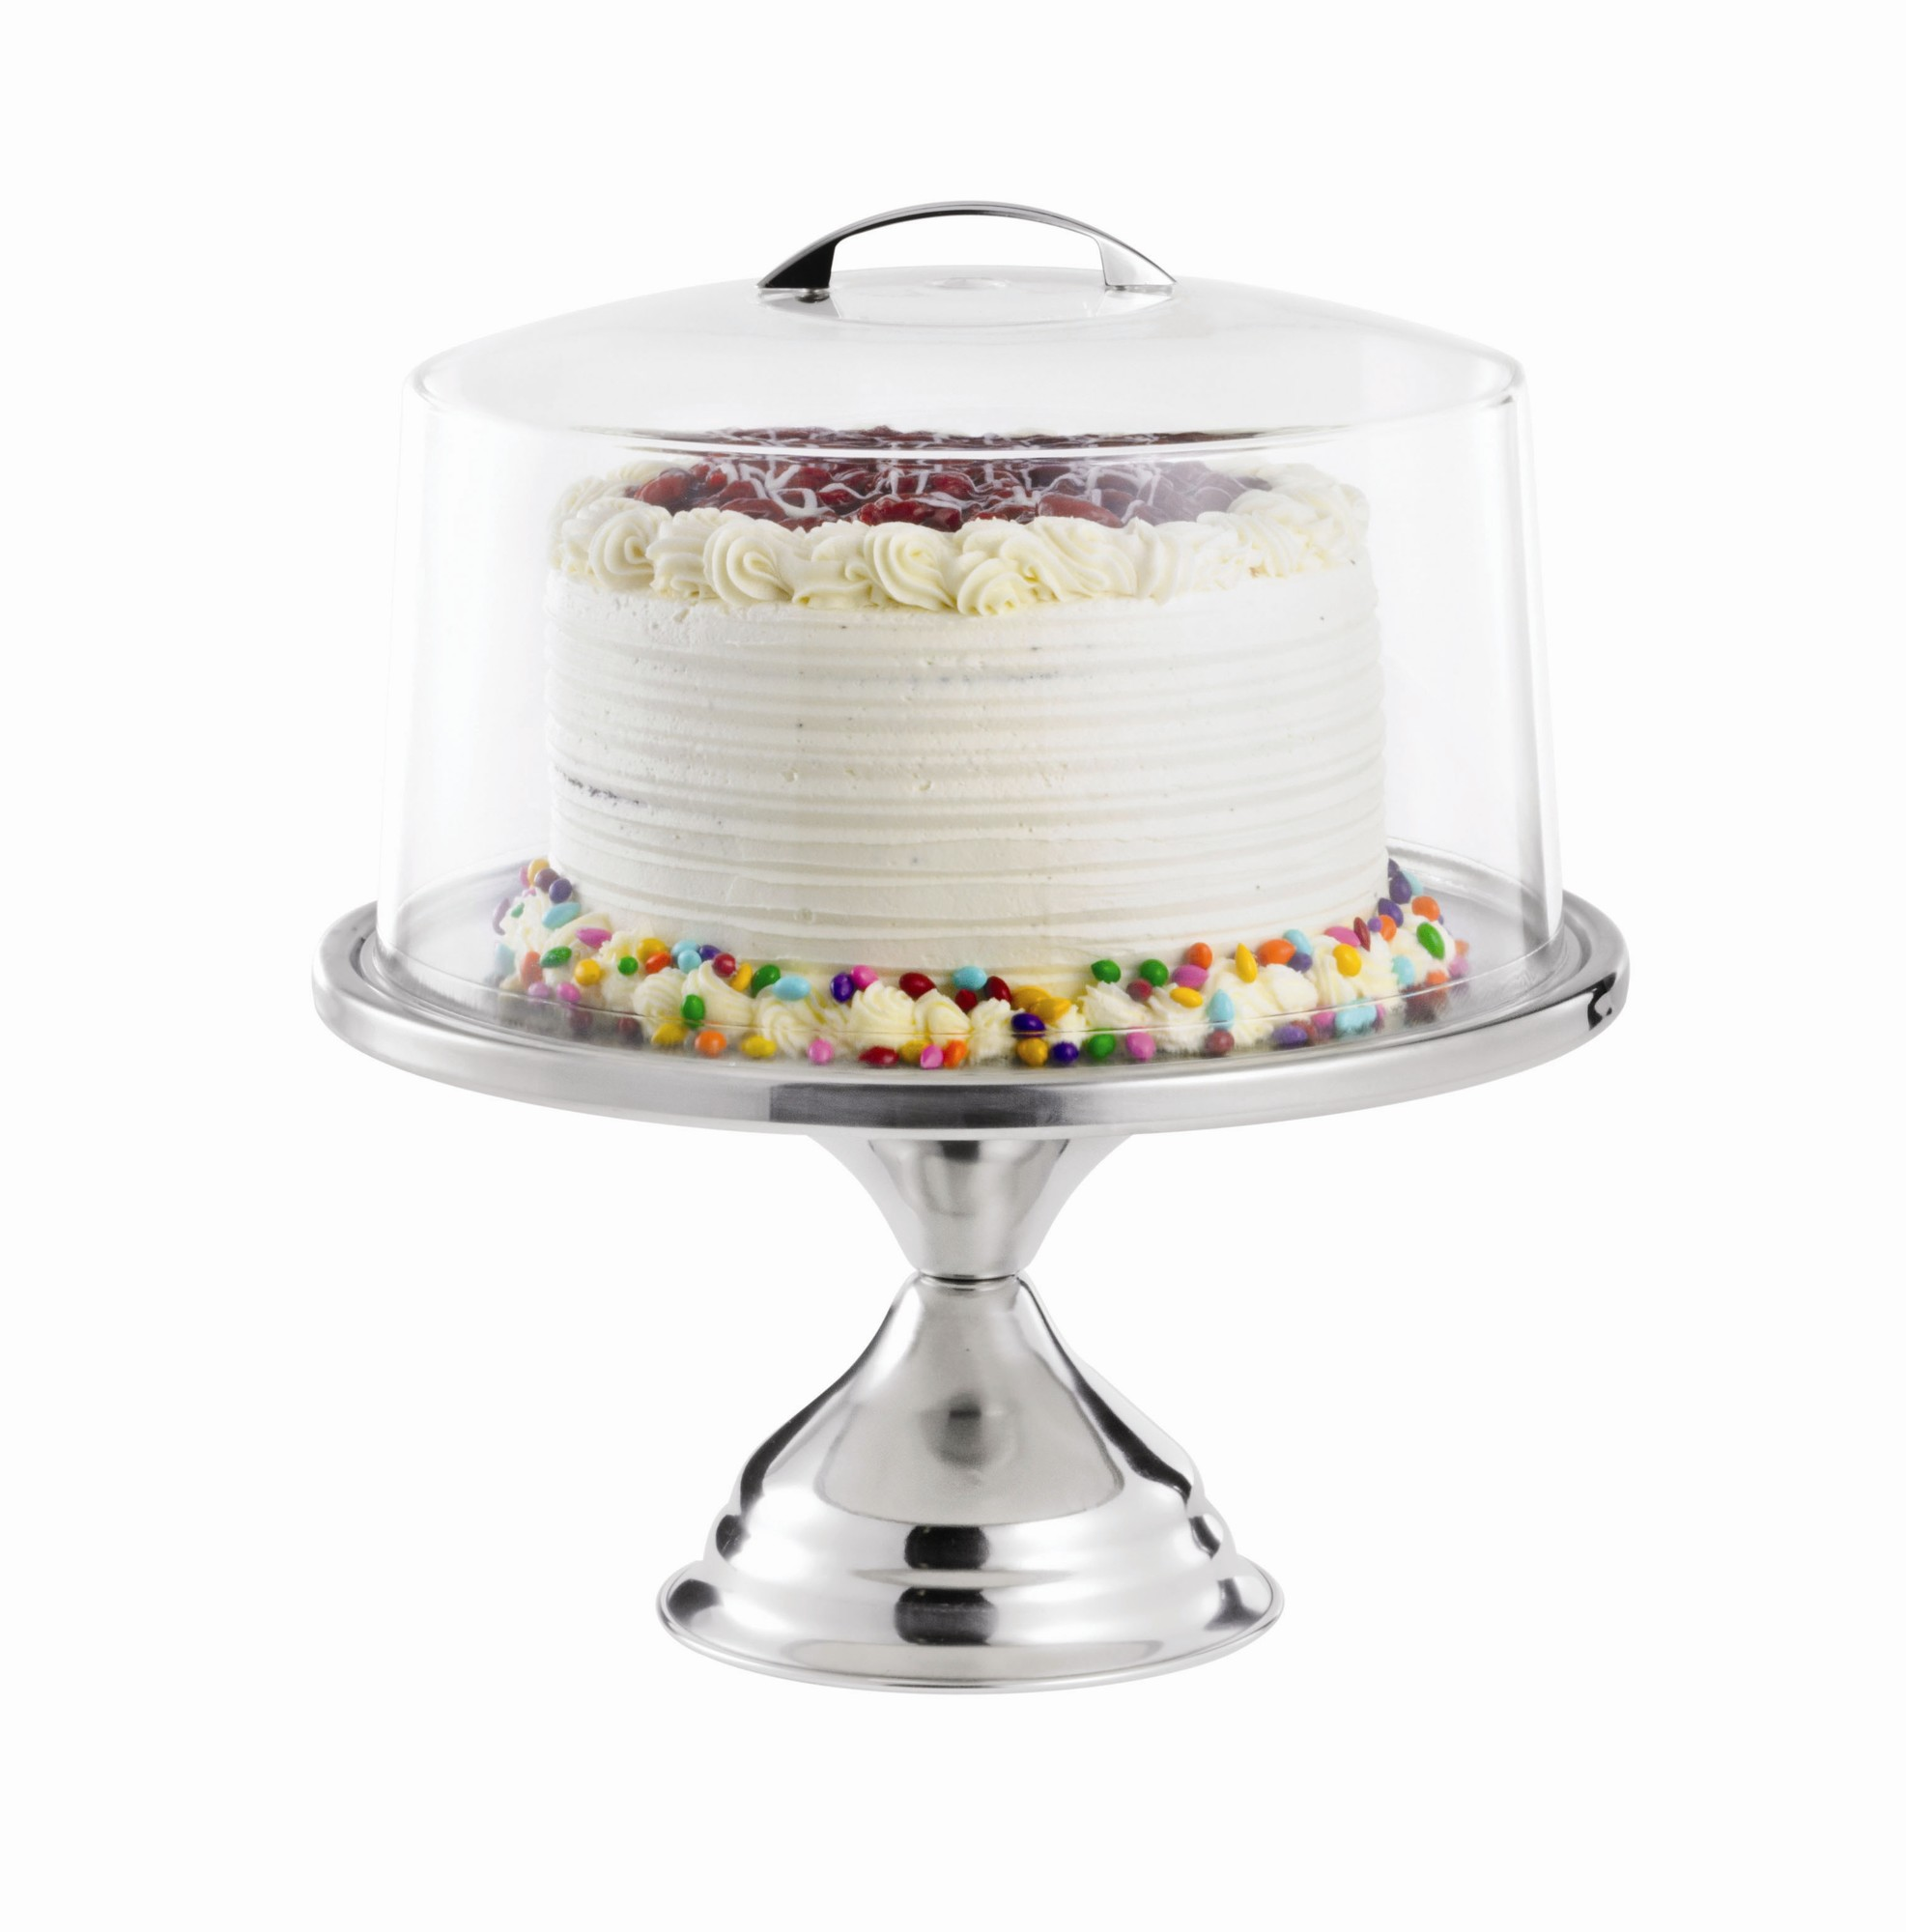 Decorative Cake Stands Tablecraft 2 Piece Cake Stand With Cover Set Walmartcom